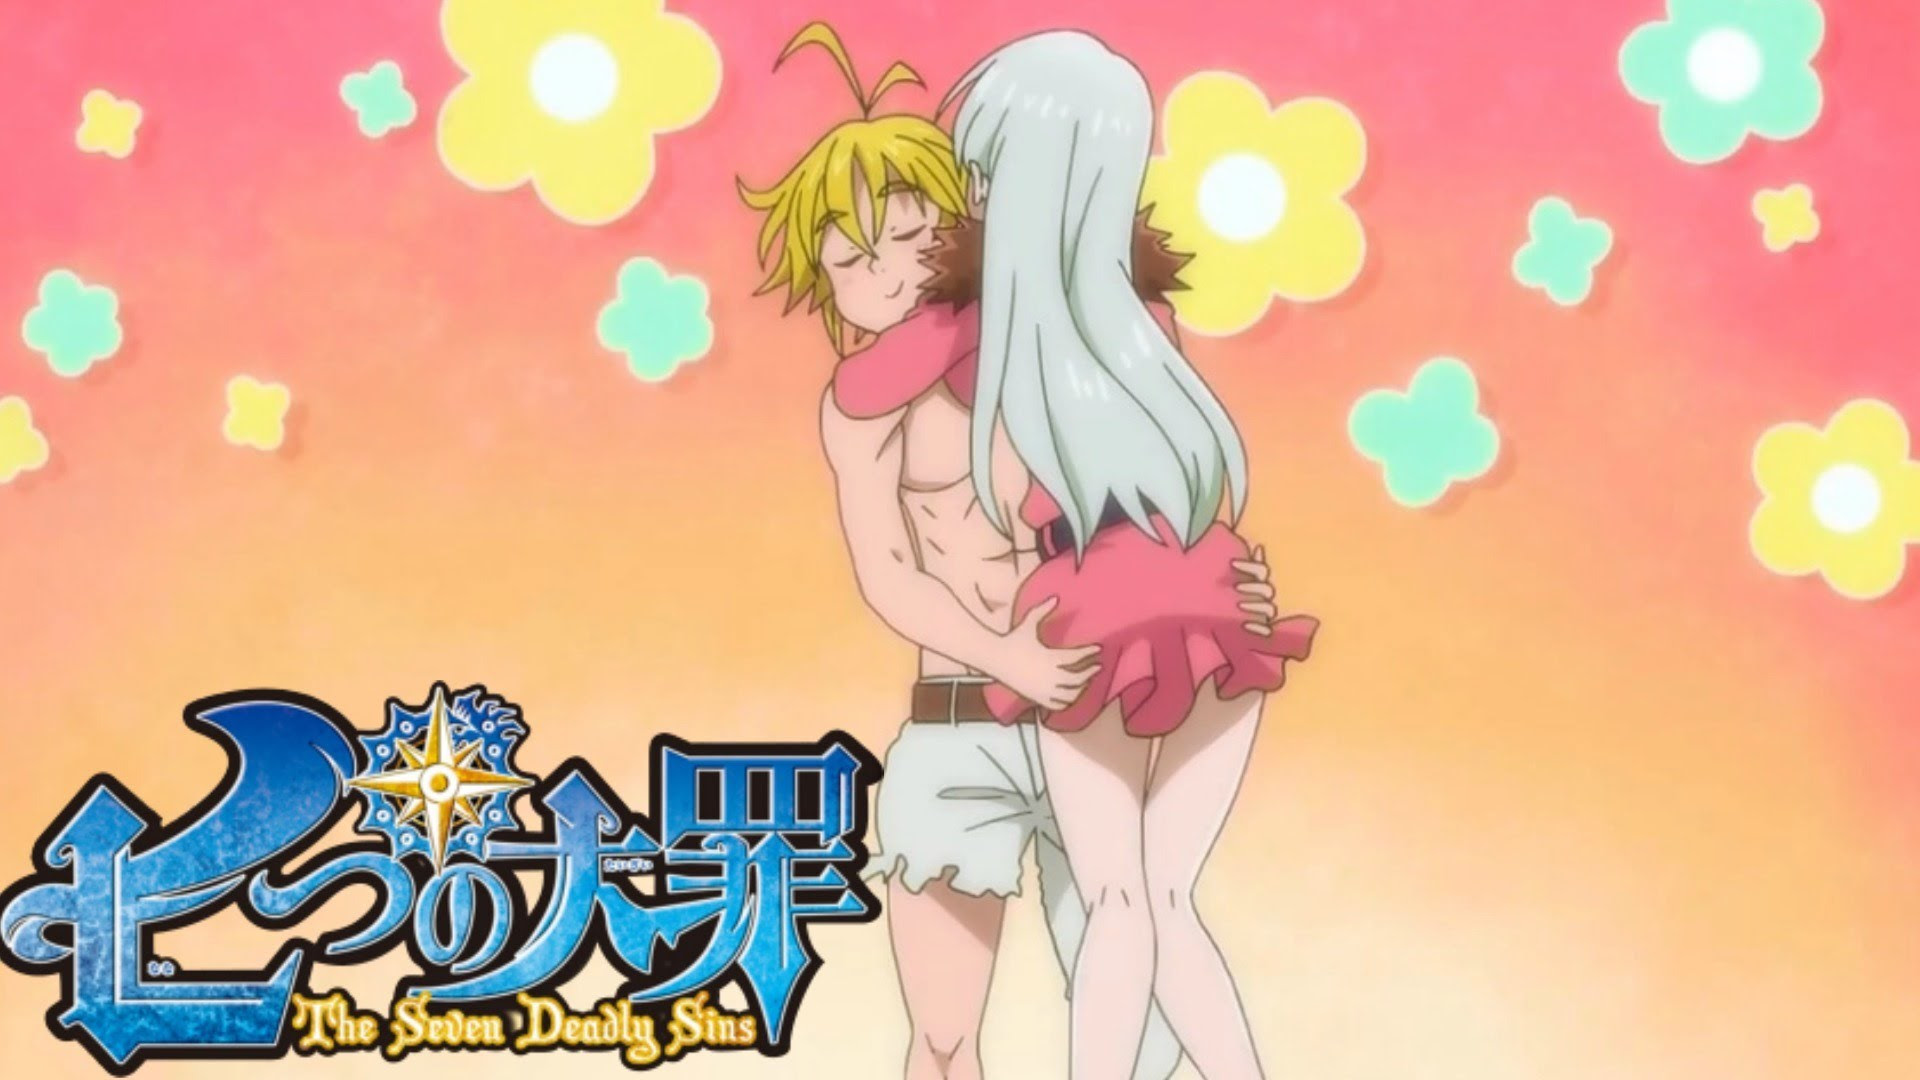 7 Deadly Sins Wallpaper 66 Images